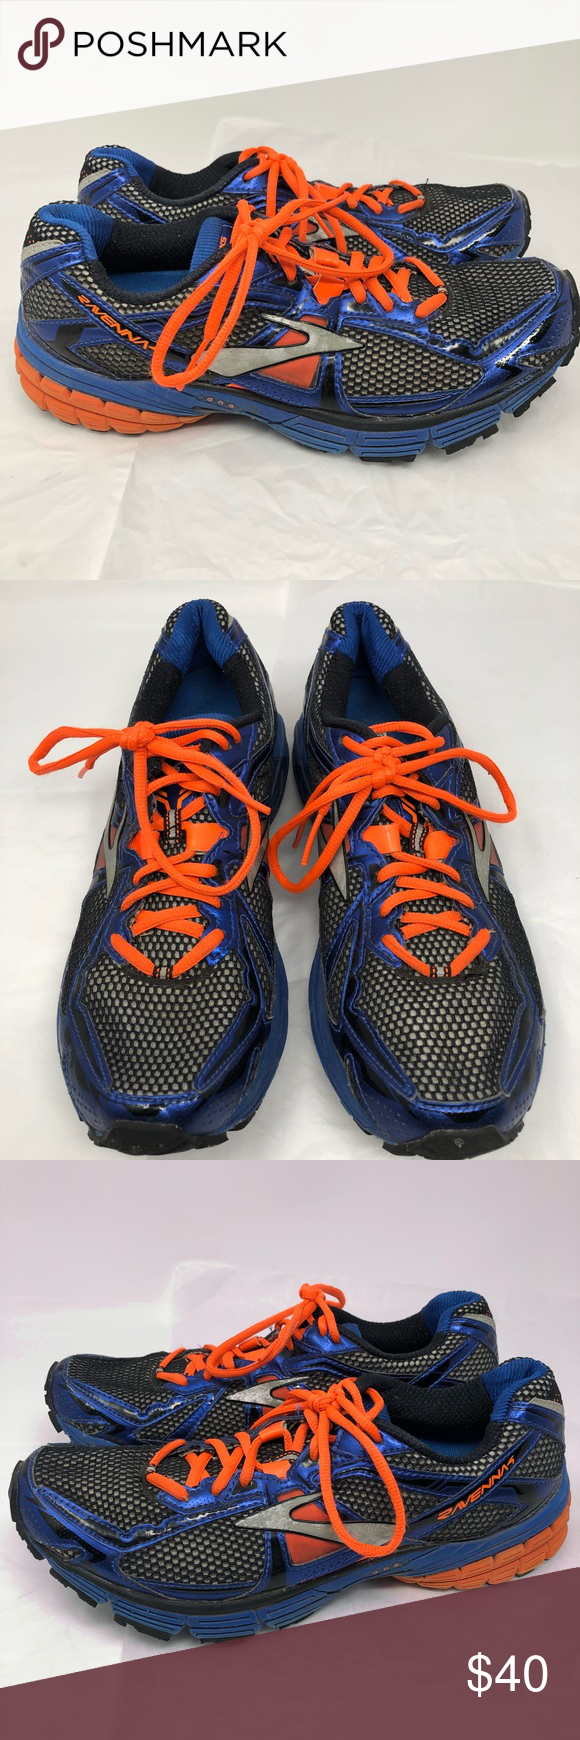 7f079ad61d2 Brooks Ravenna 4 Blue Black Orange Tennis Shoe 9.5 Very good used condition.  Please see photos for details. Brooks Shoes Athletic Shoes